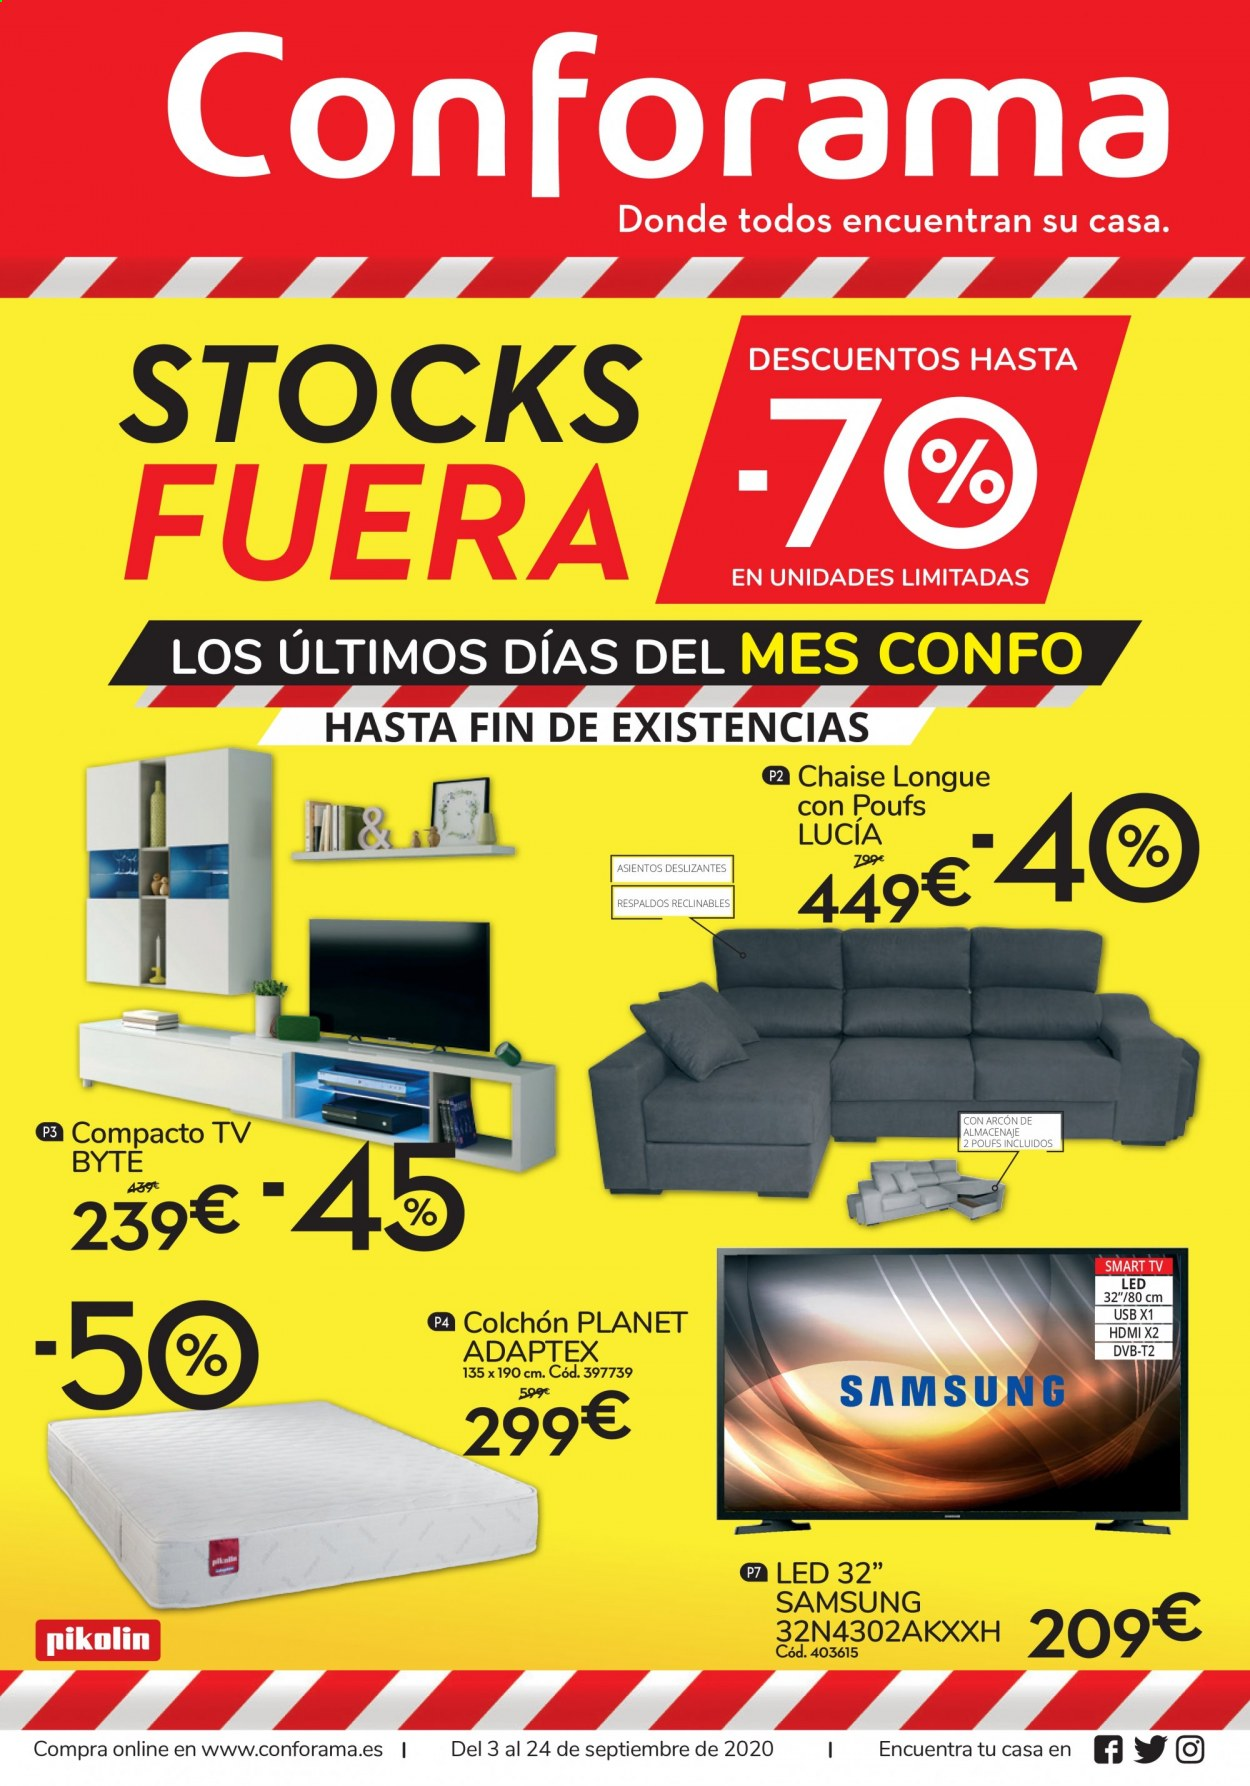 Folleto actual Conforama - 3.9.2020 - 24.9.2020 - Ventas - tv led, led, colchón, dvb-t, hdmi, chaiselongue, smart tv, televisor led, tv, usb, samsung, smart tv led. Página 1.